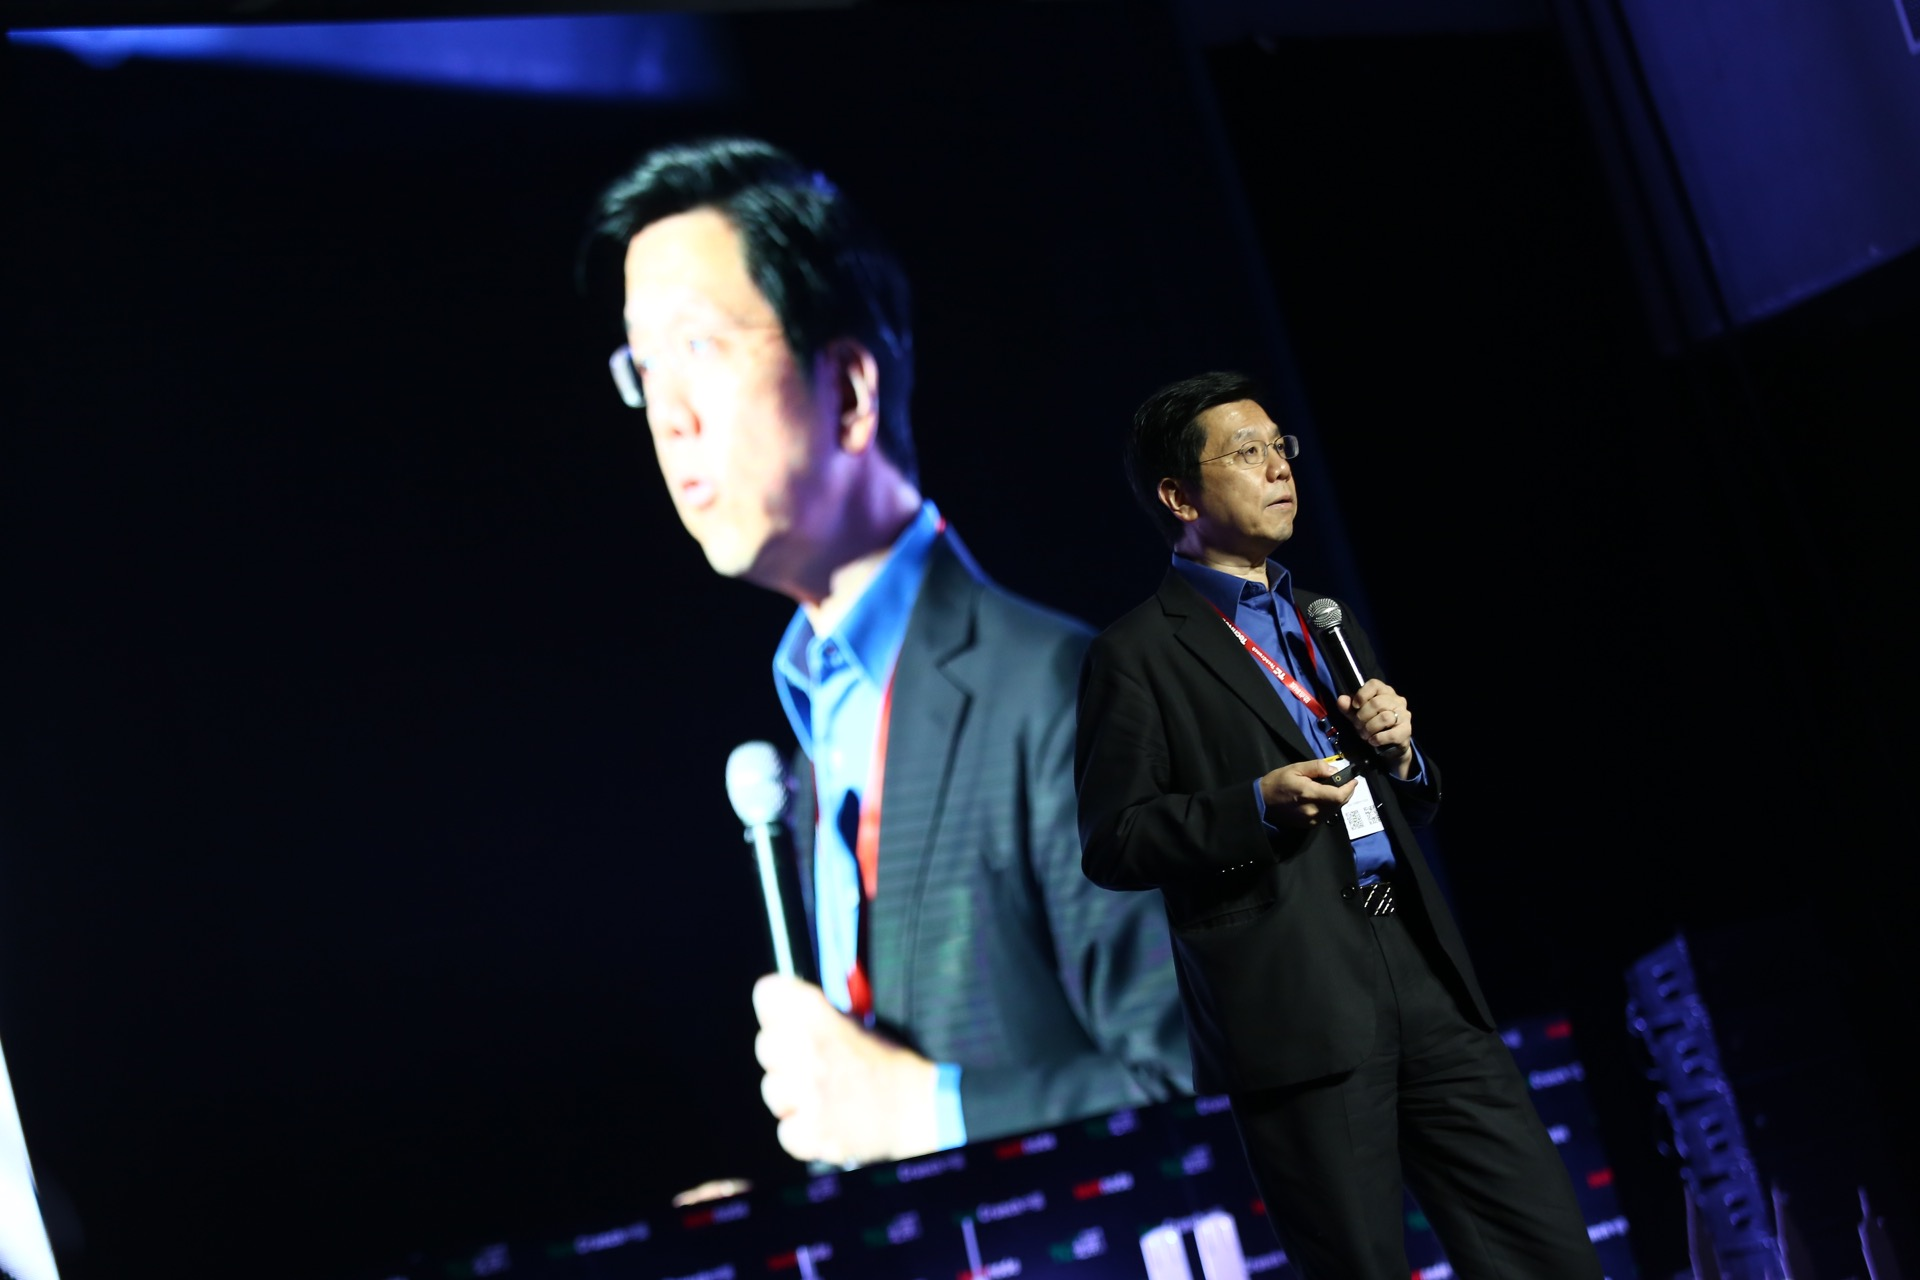 Kaifu Lee at 2016 TechCrunch Conference